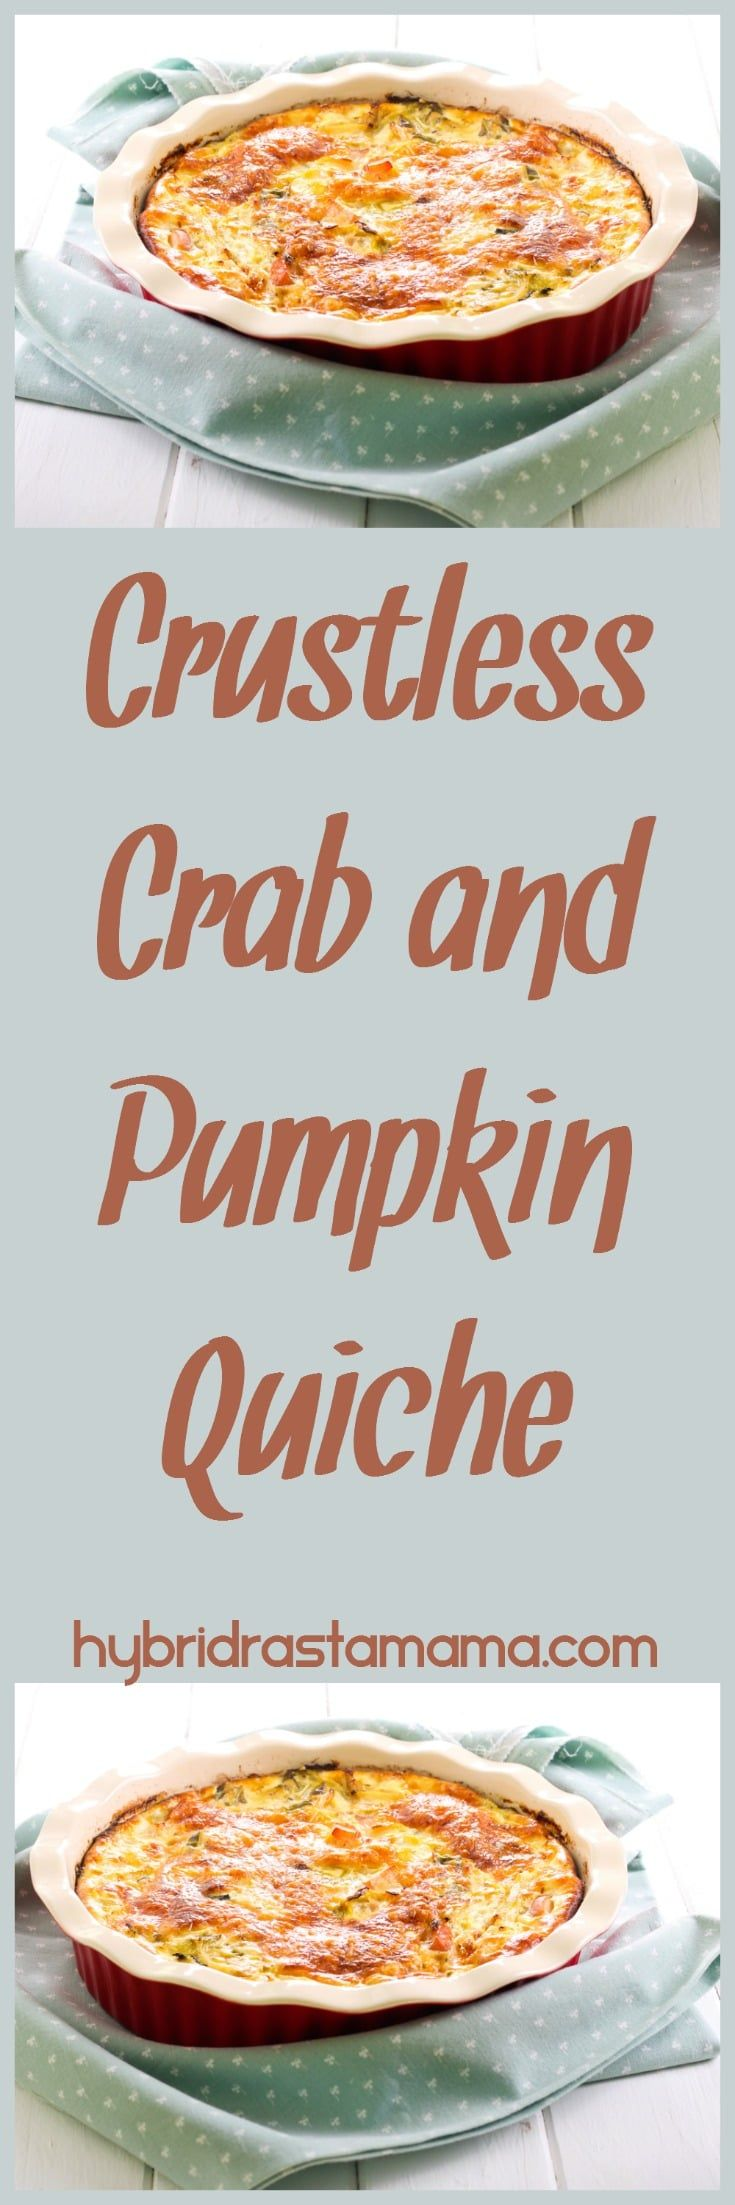 An easy to make crab and pumpkin quiche with a unique ingredient list! Don't be afraid to try this delicious combination...the flavors come together in the most palate pleasing way. (Gluten free and grain free) From HybridRastaMama.com